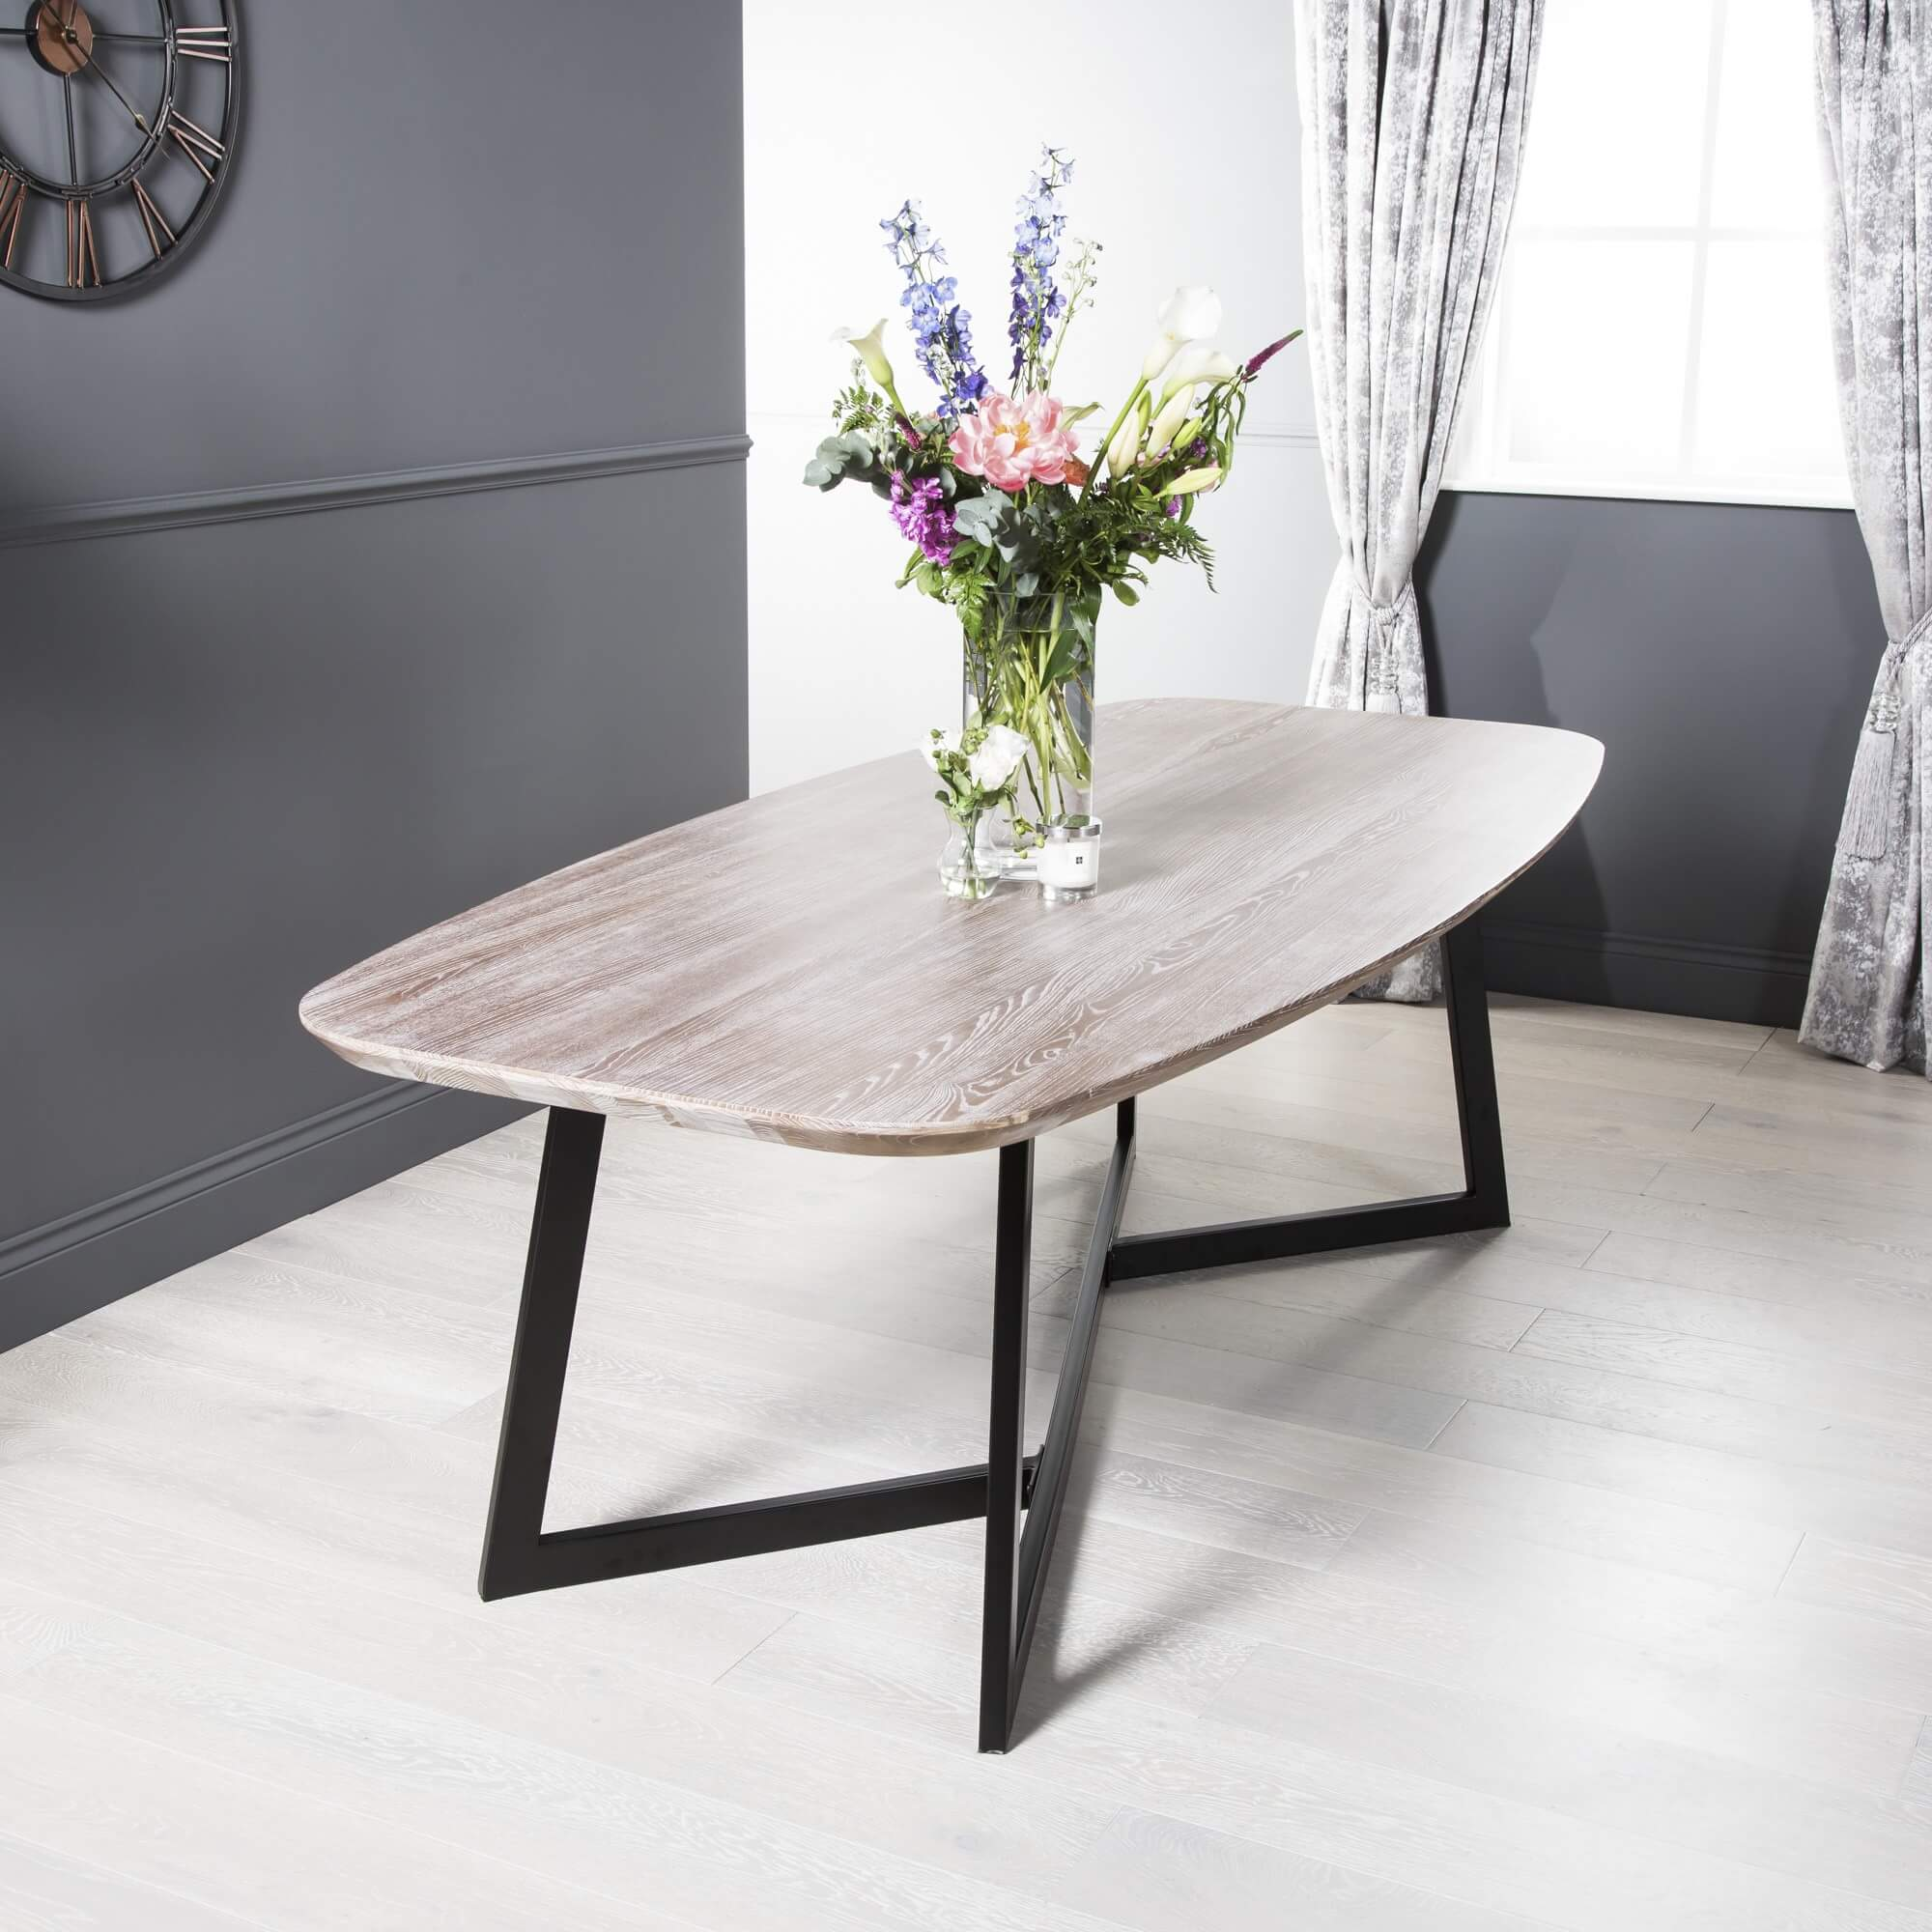 2.4m Solid Oval Ash Dining Table